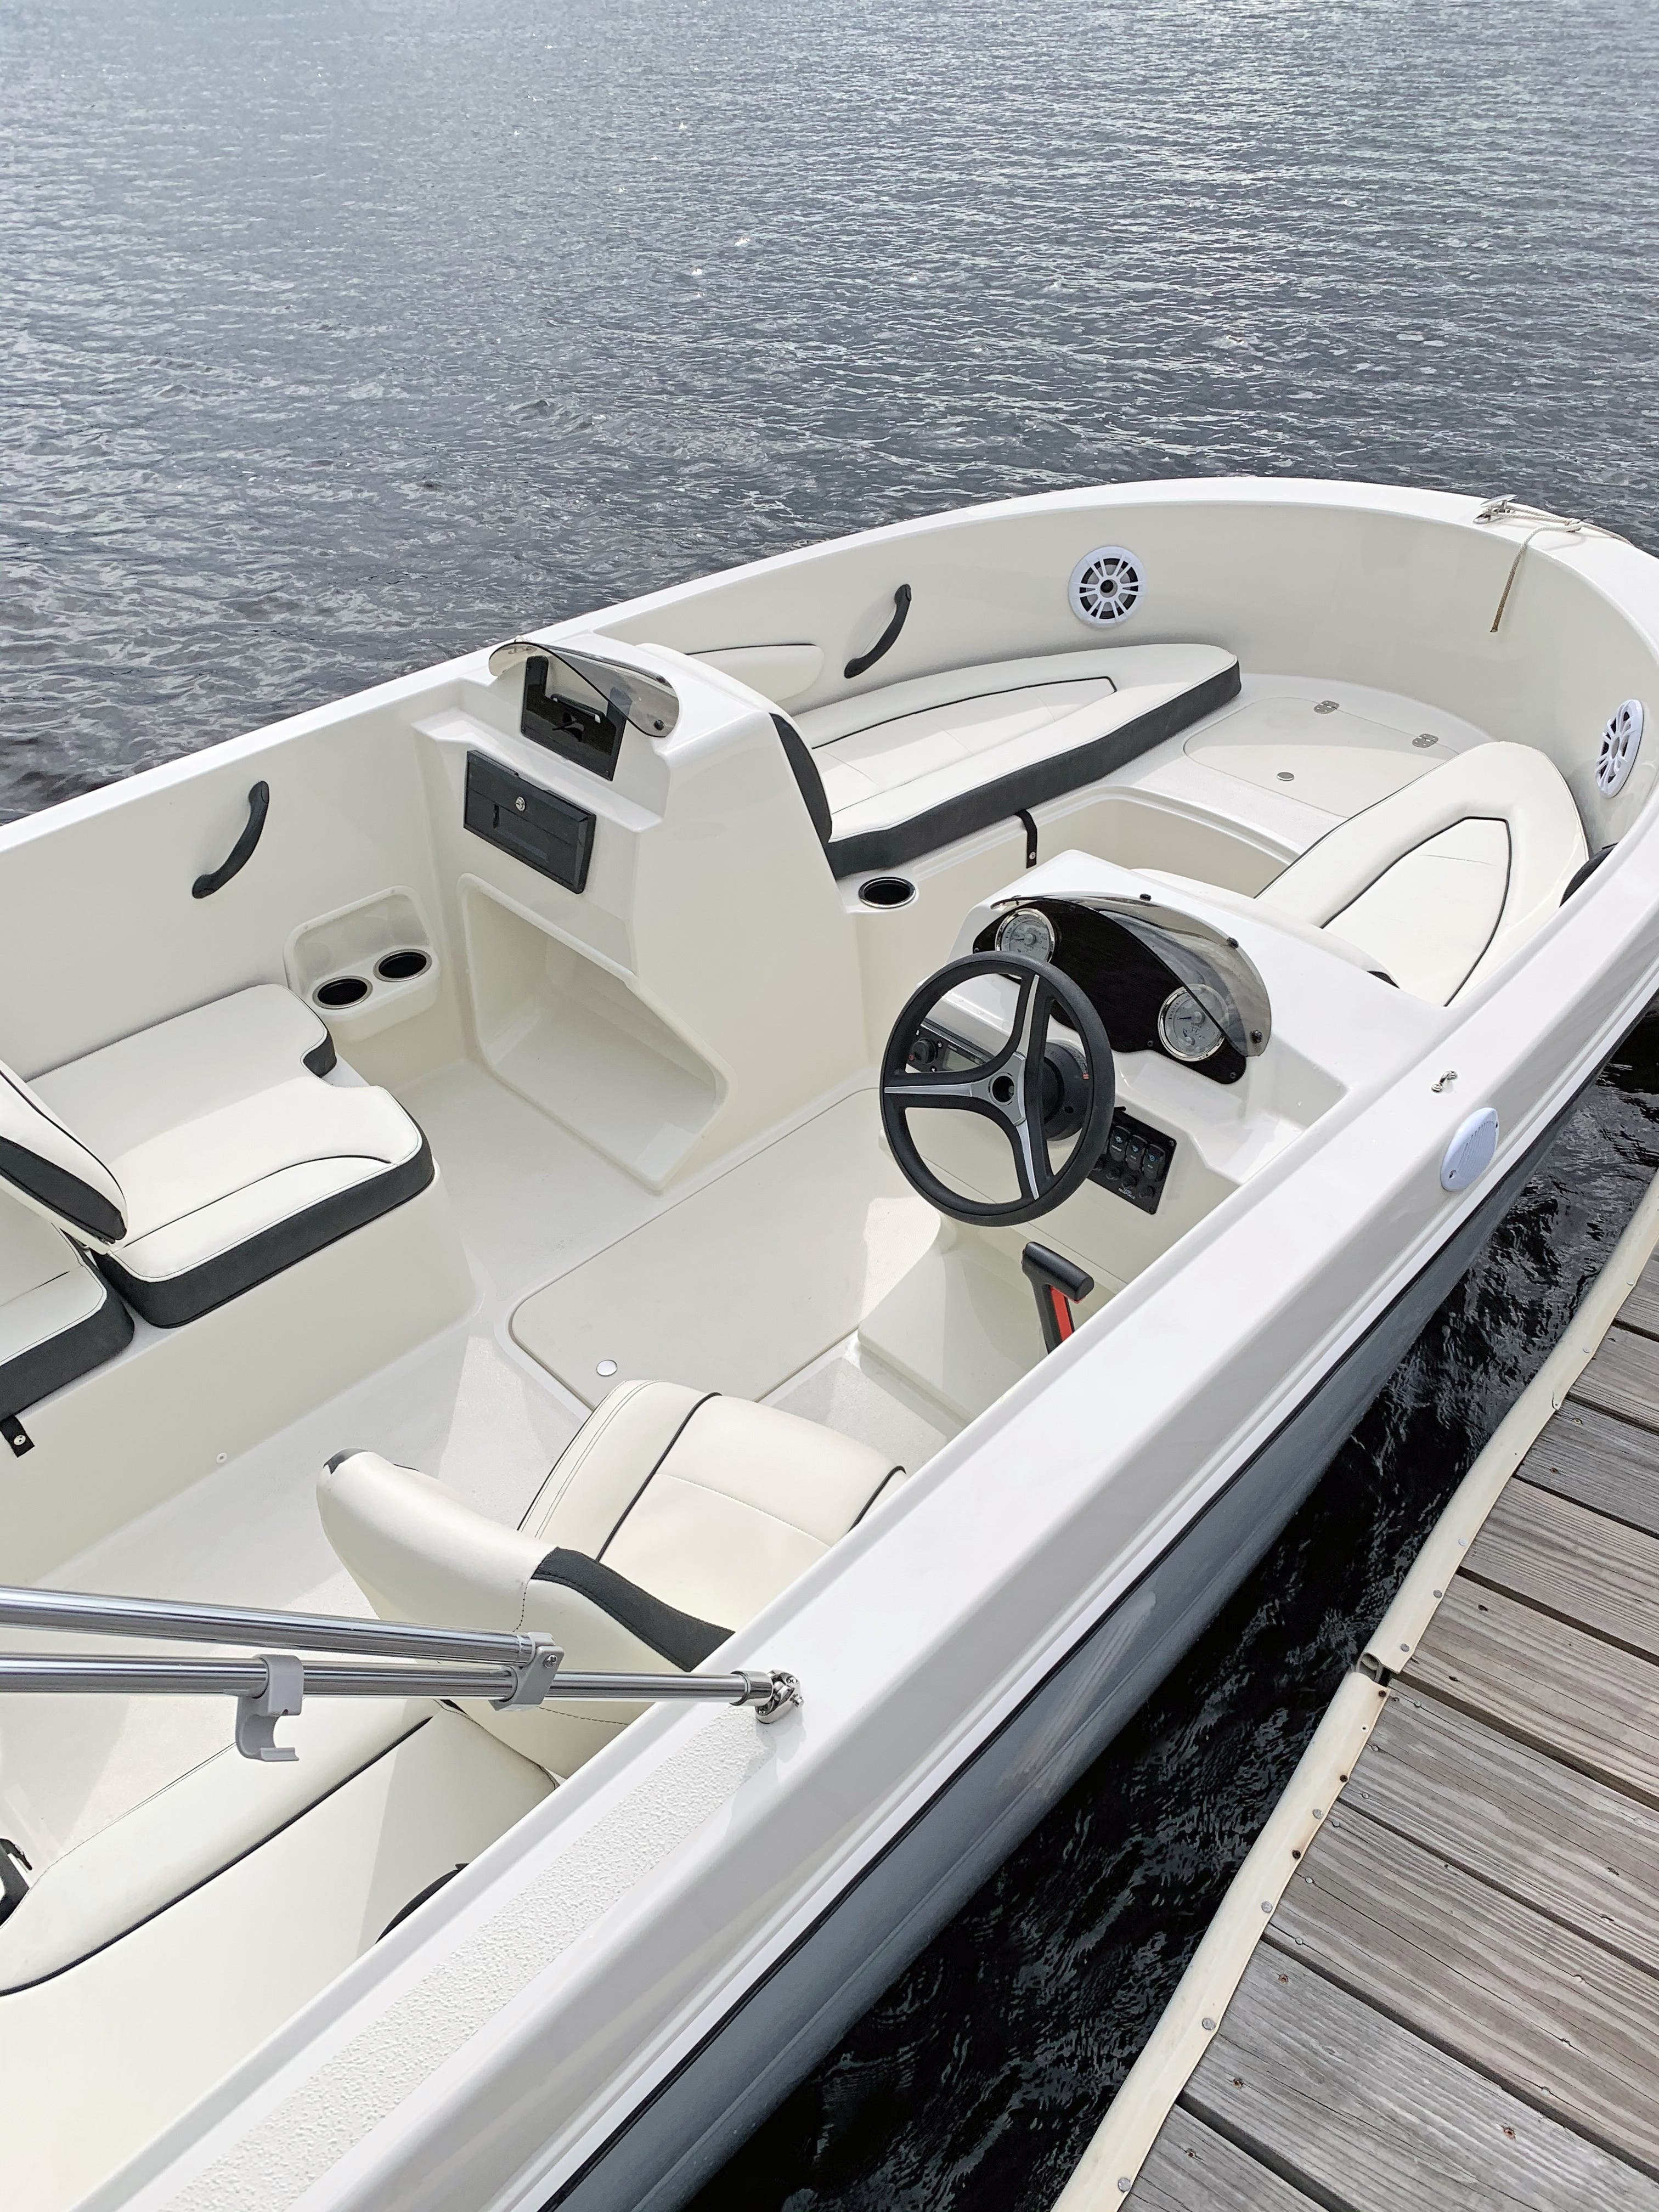 2022 Stingray boat for sale, model of the boat is 172sc & Image # 10 of 17